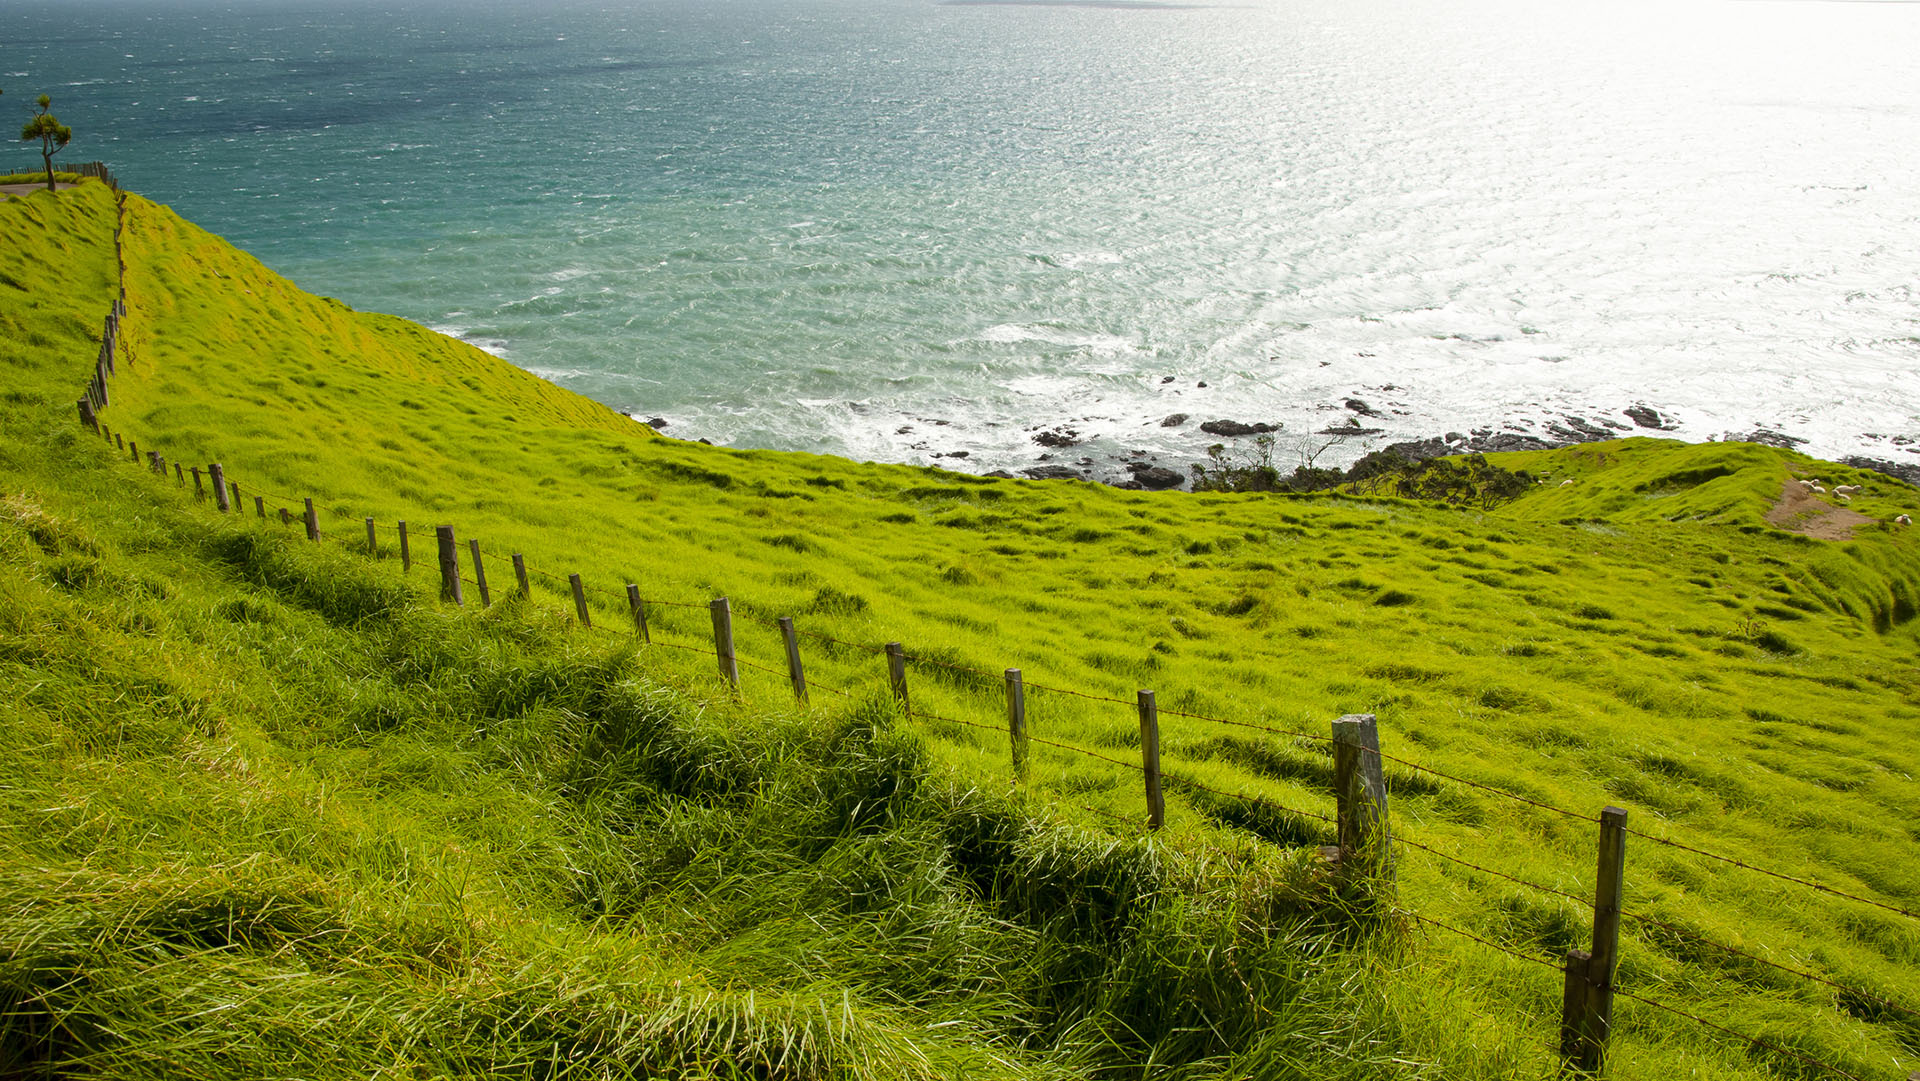 Sheep Pasture - Port Jackson - New Zealand